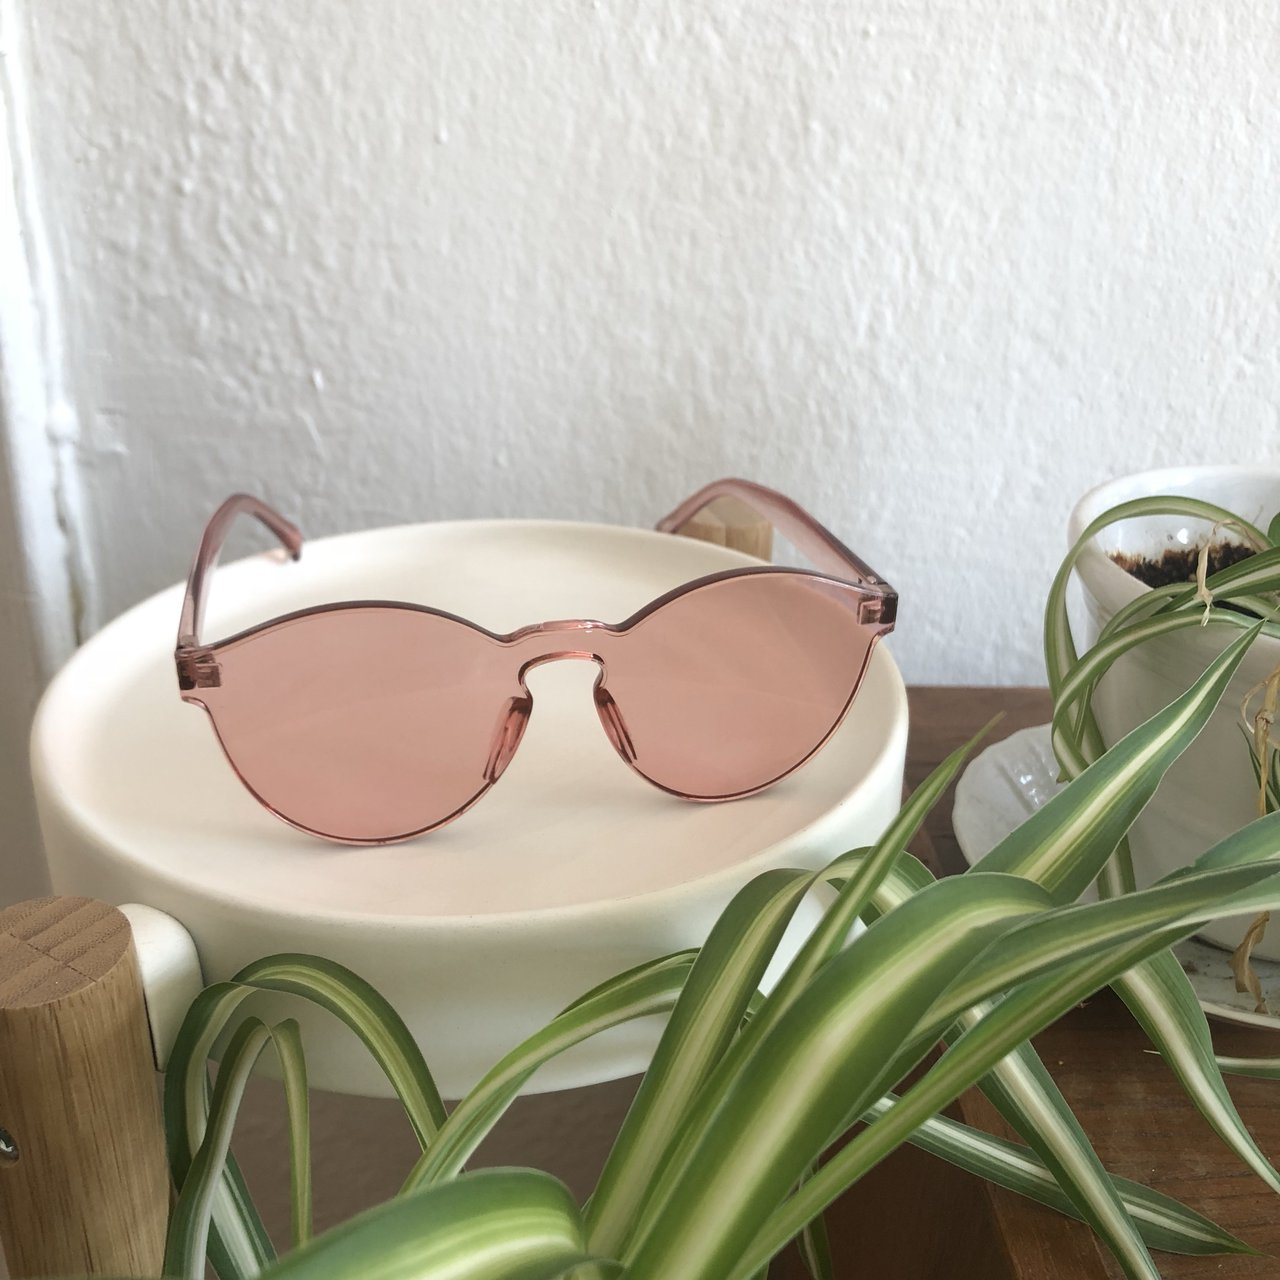 d0dca85572b See the world through rose colored glasses...literally super - Depop